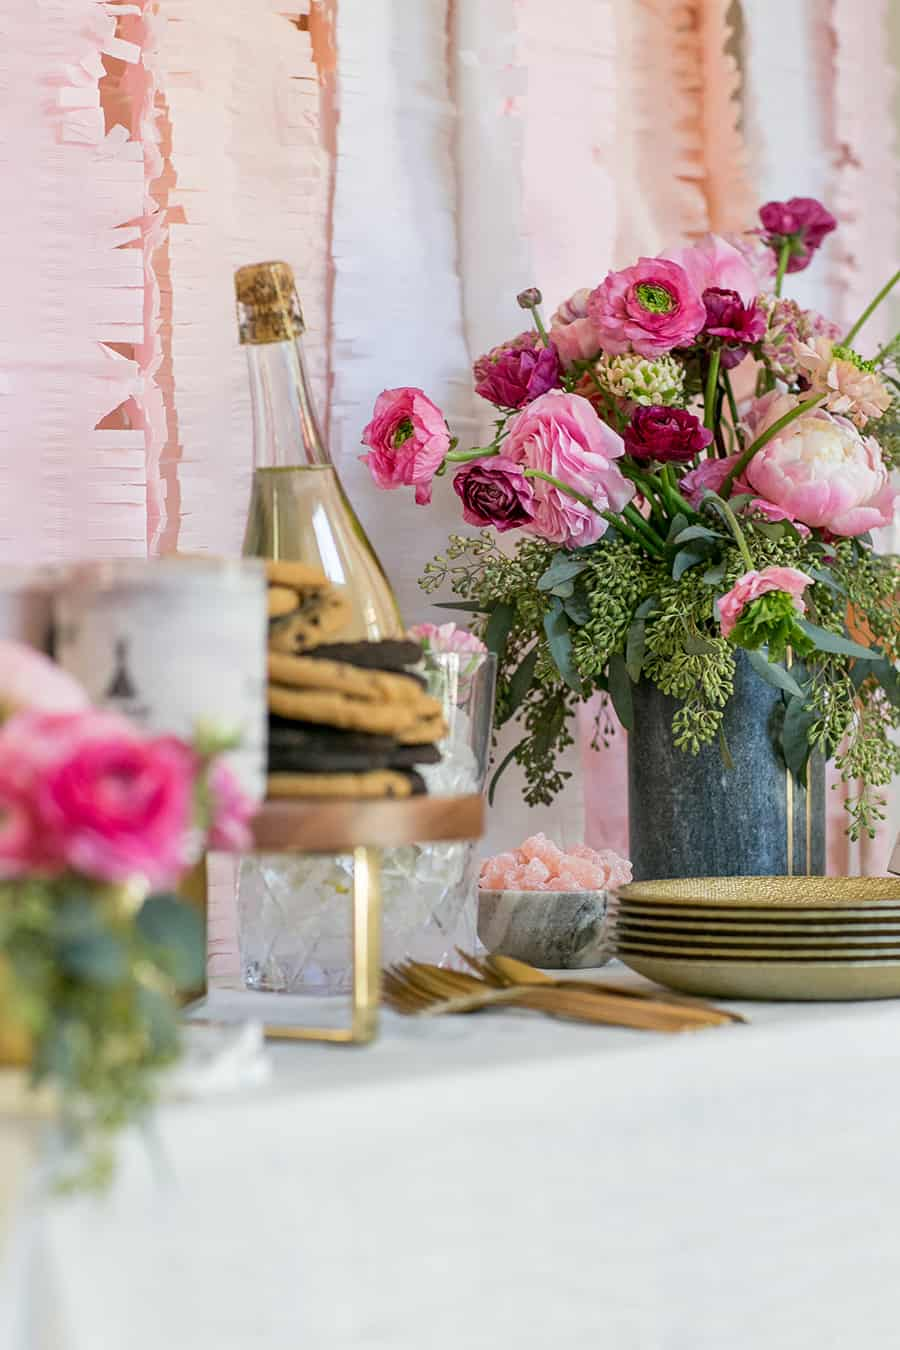 Valentine's Day bar with flowers, cookies, plates and sparkling wine.